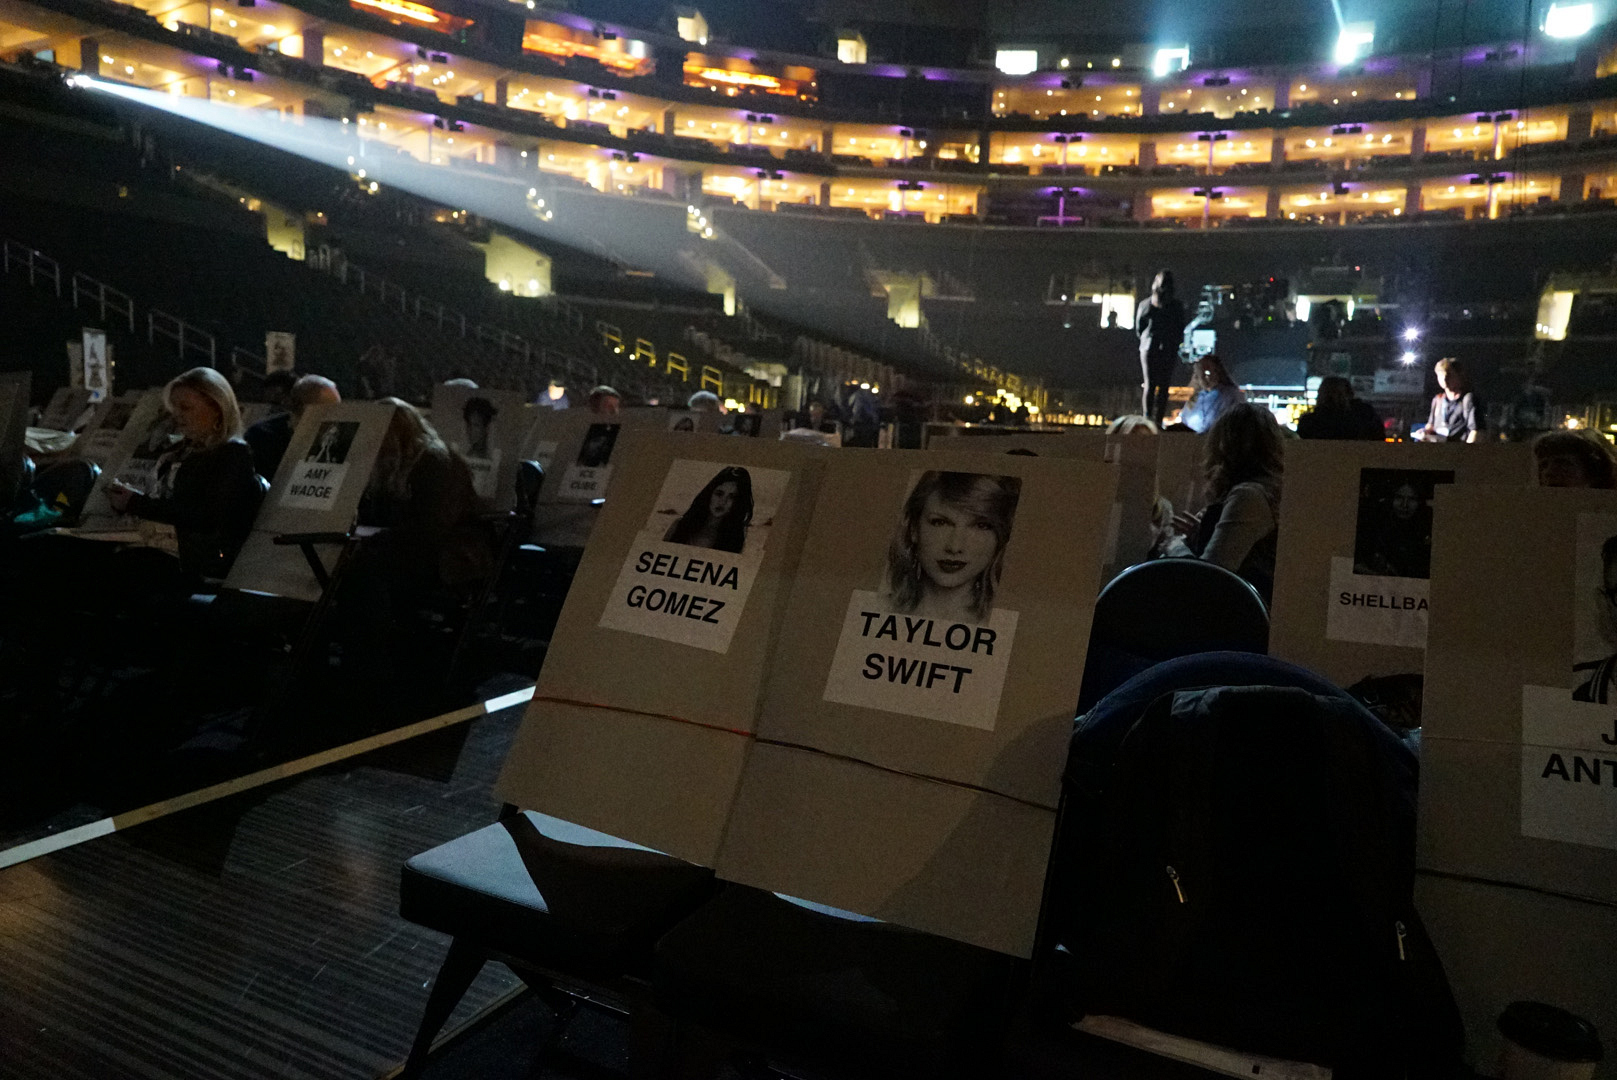 Gal pals Selena Gomez and Taylor Swift will be dancing from these seats.